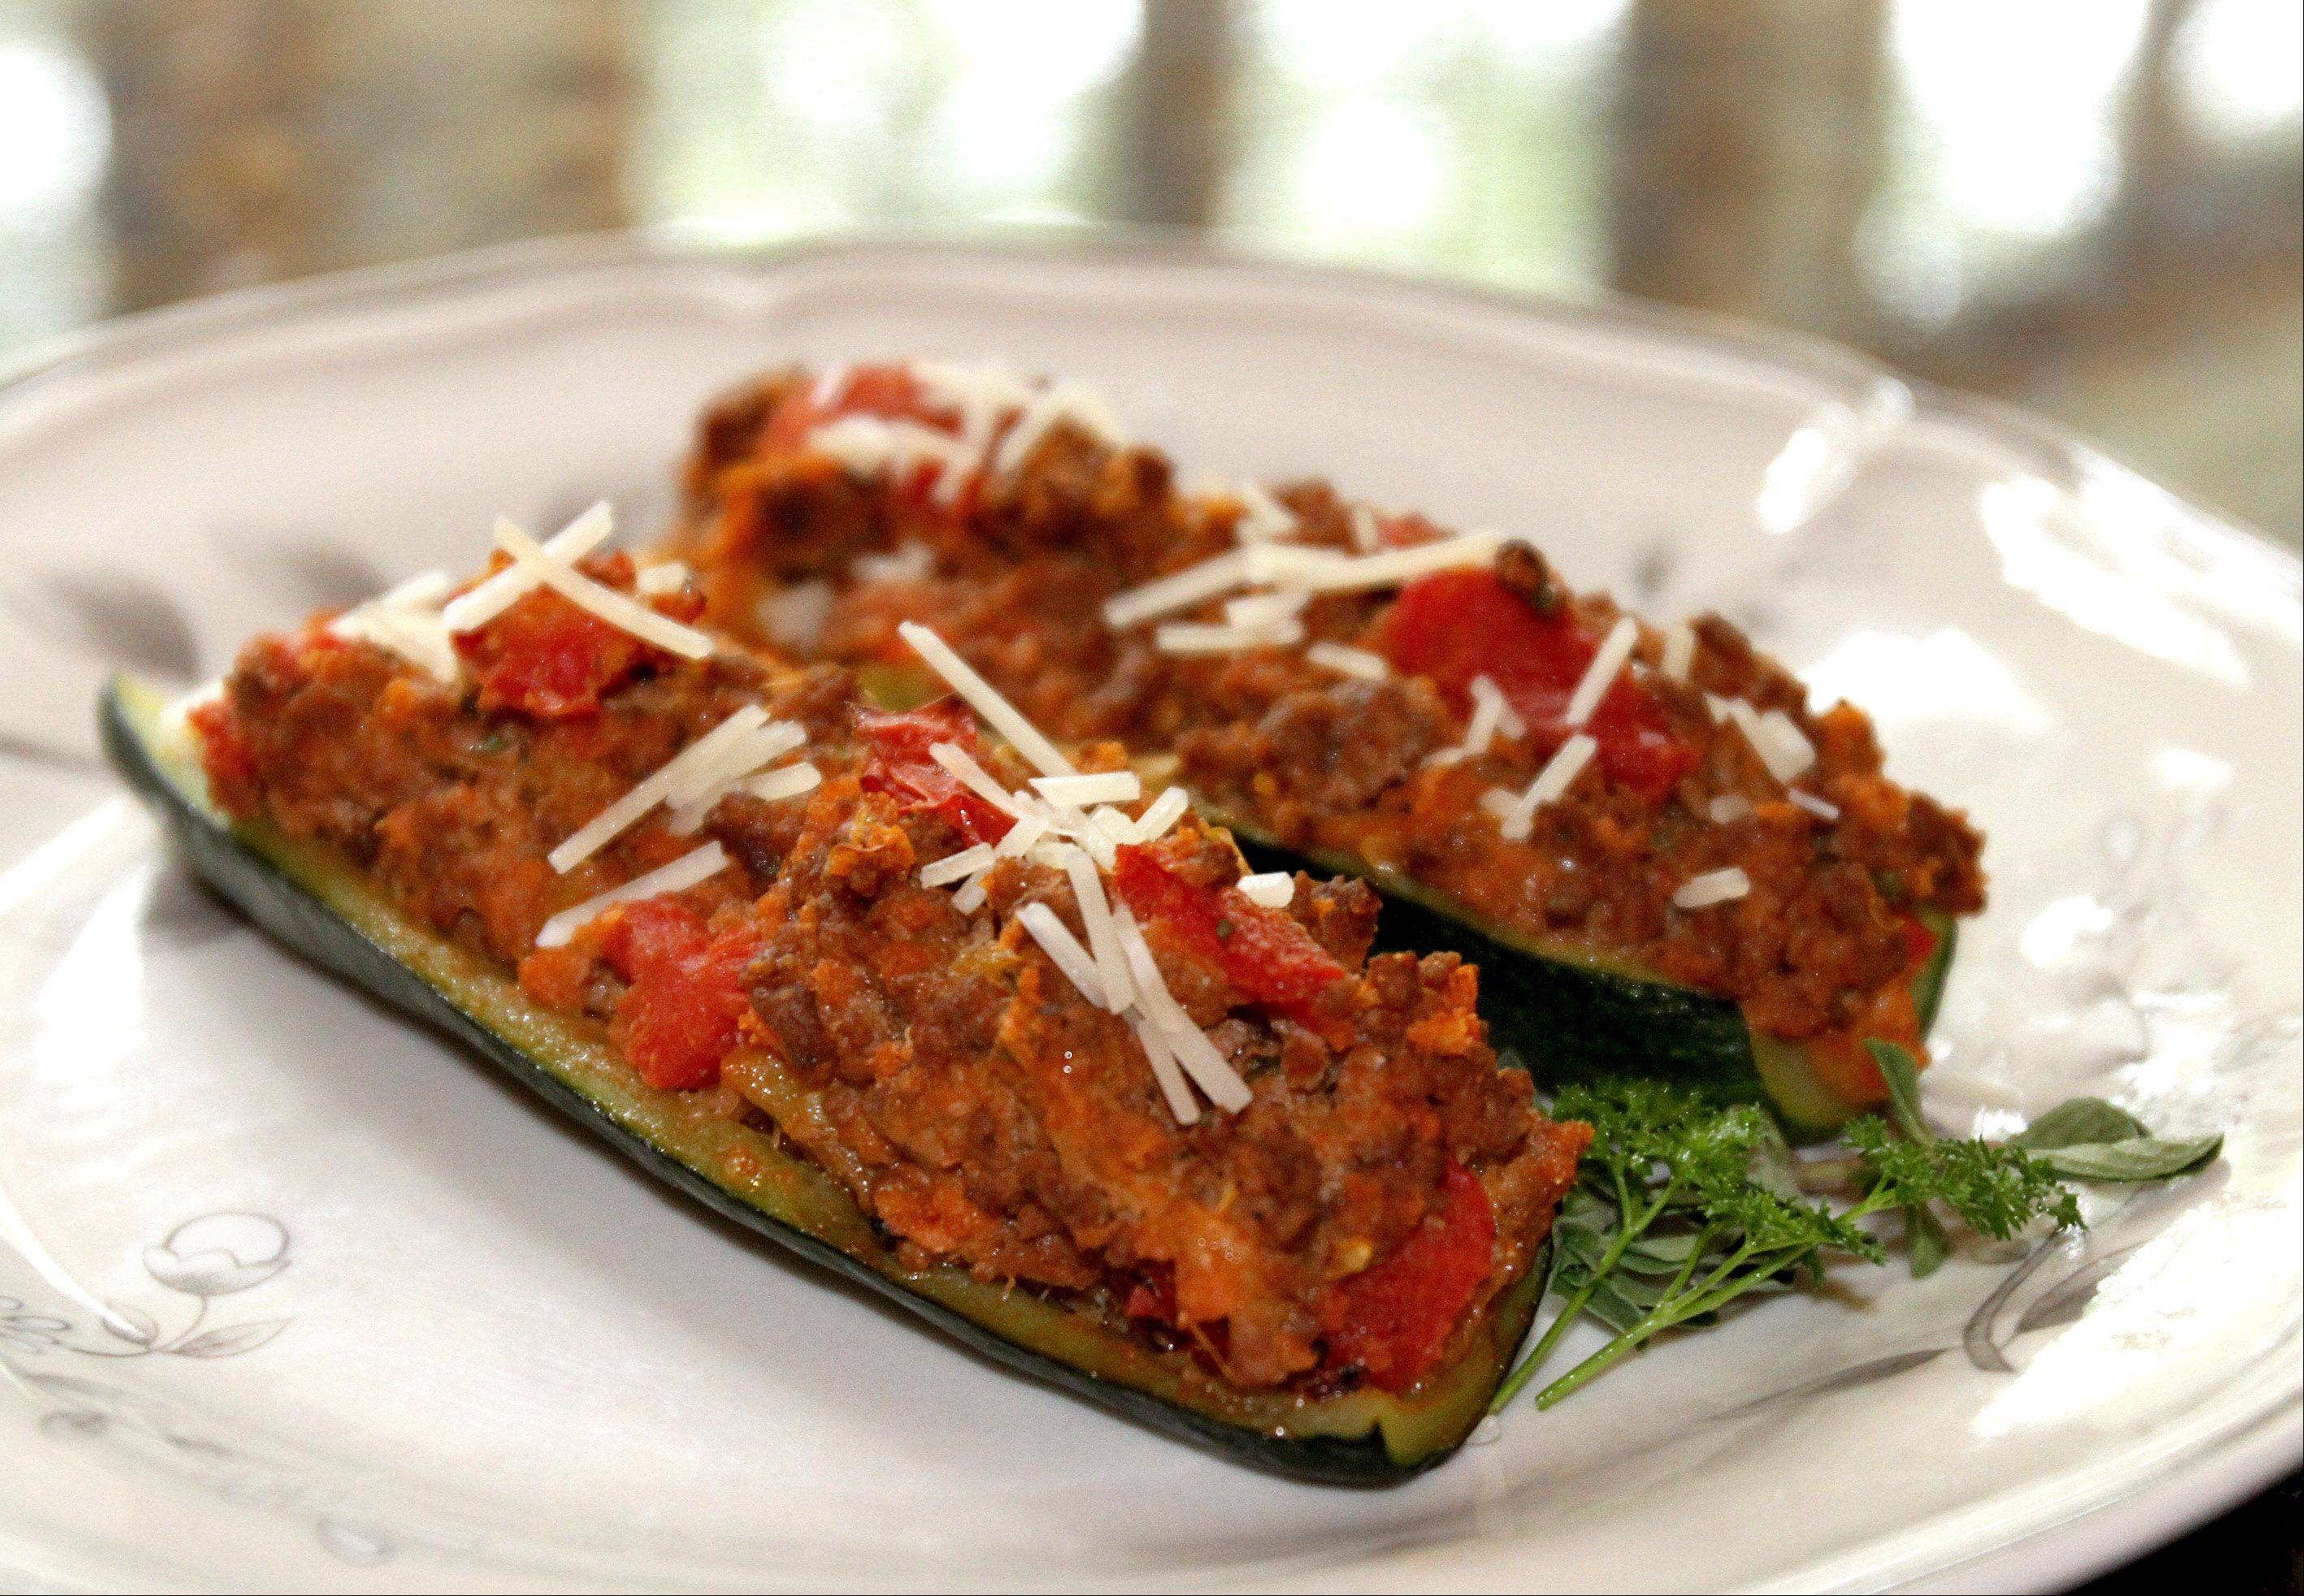 Stuffed Zucchini Baked Italian Style with Ground Beef and Fresh Herbs